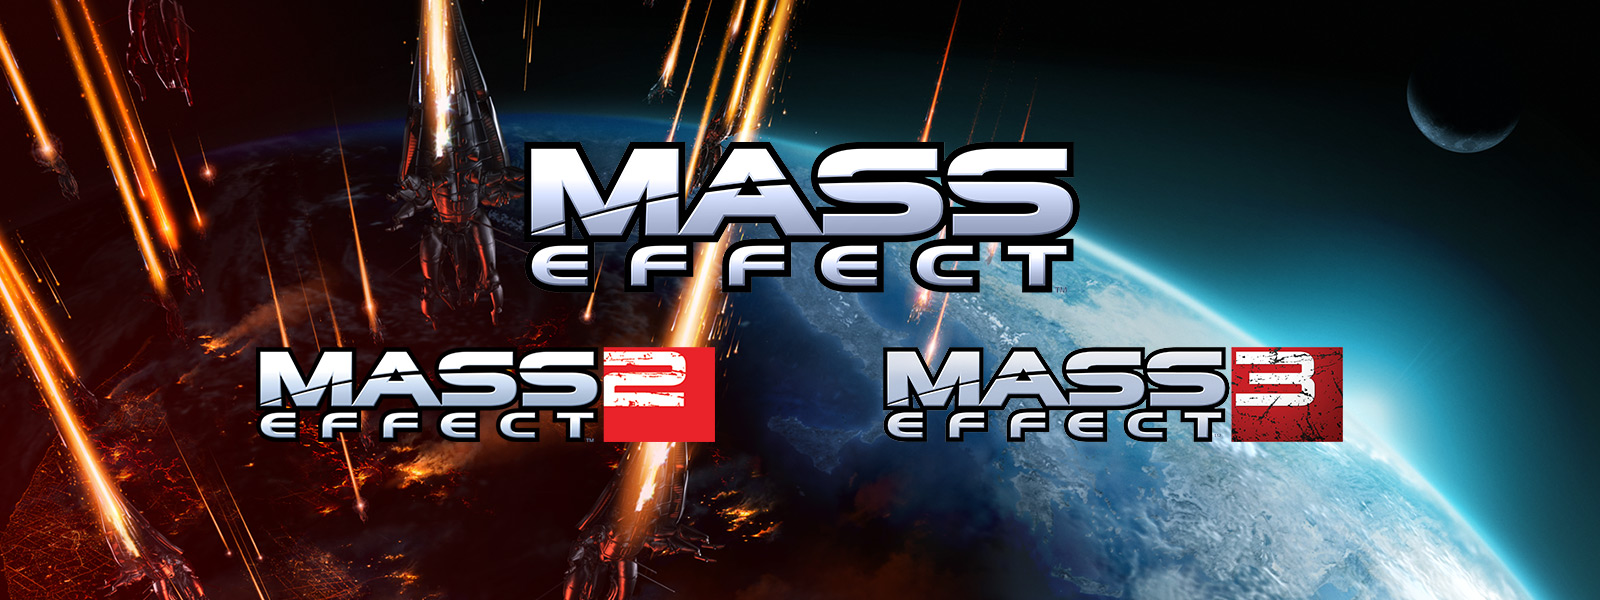 Mass Effect bakoverkompatibilitet